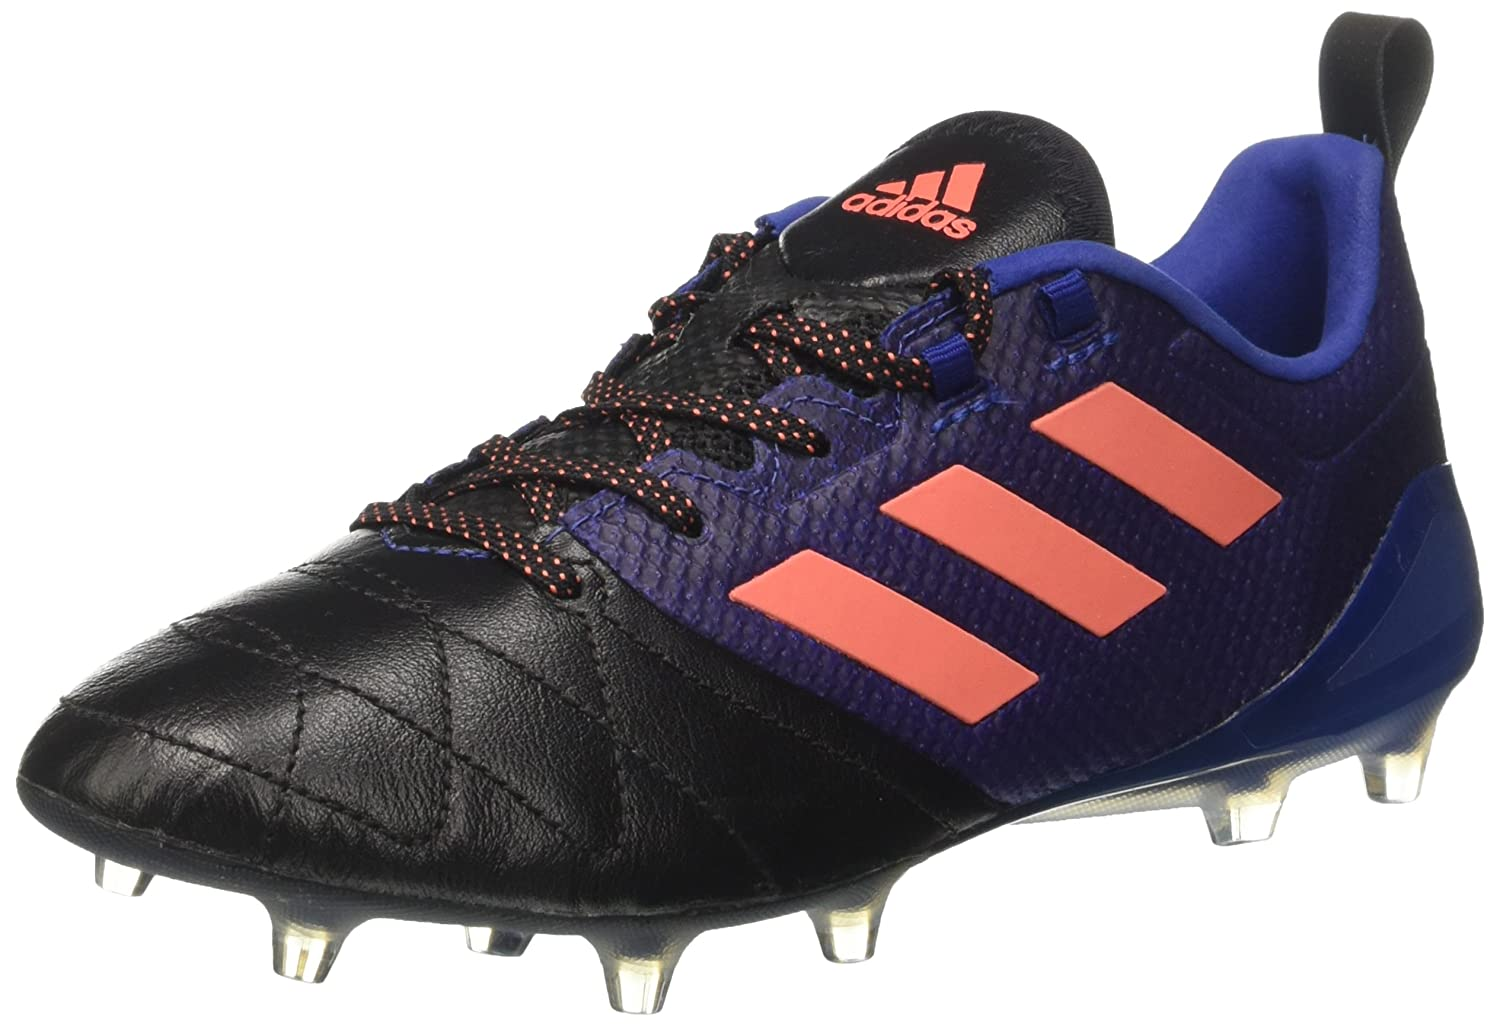 promo code b957e 18e8d adidas Women's Ace 17.1 Fg W Footbal Shoes: Amazon.co.uk ...